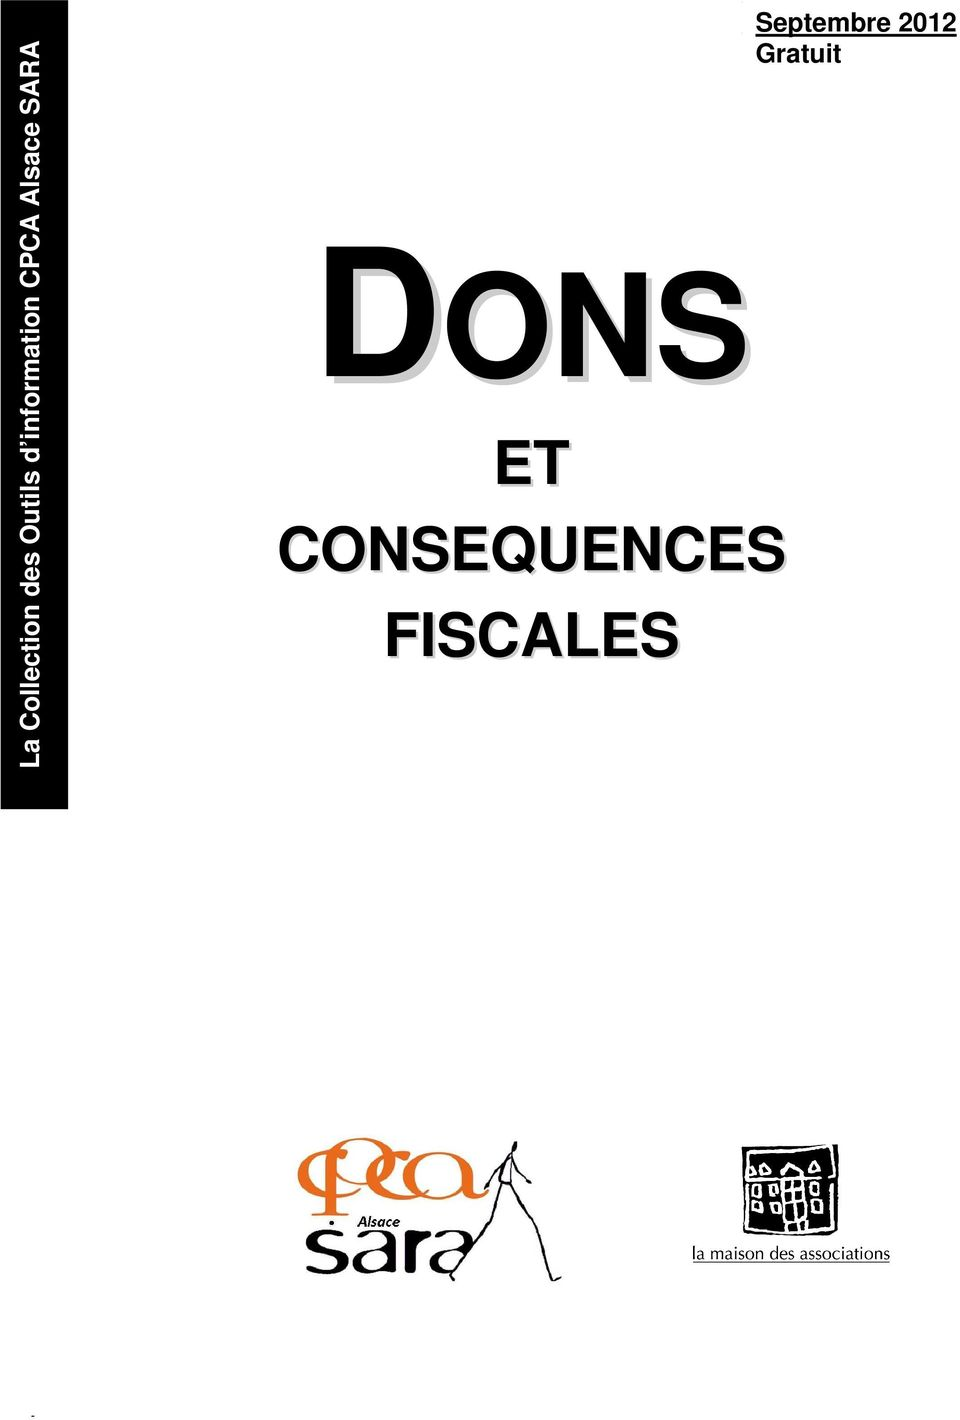 CONSEQUENCES FISCALES Septembre 2012 Gratuit La